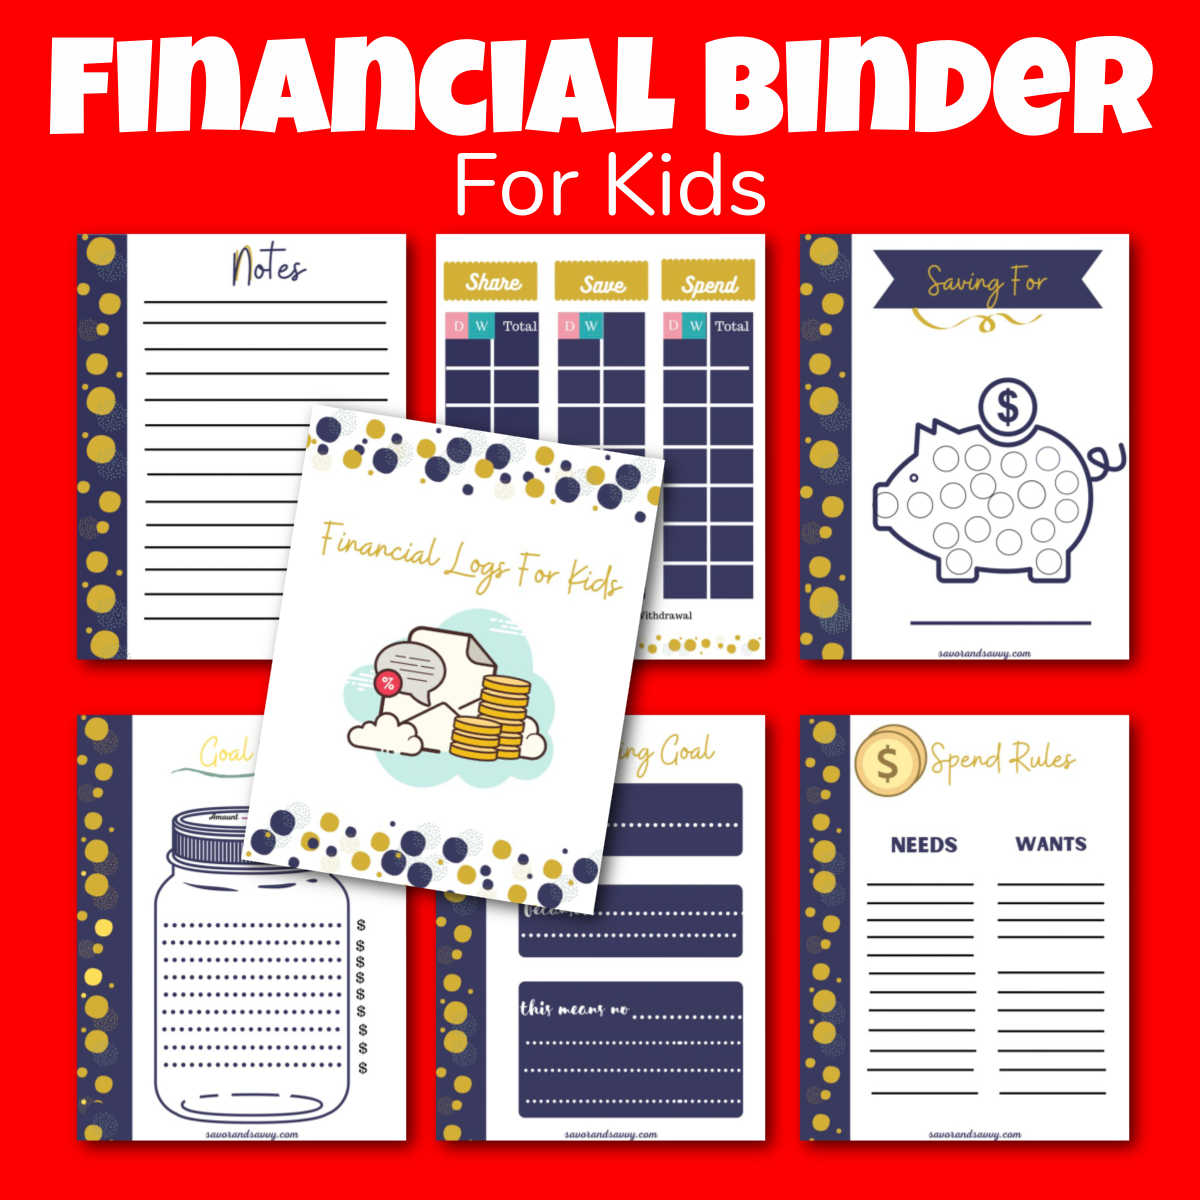 summary photo showing all seven pages of the printable that are included in the binder.